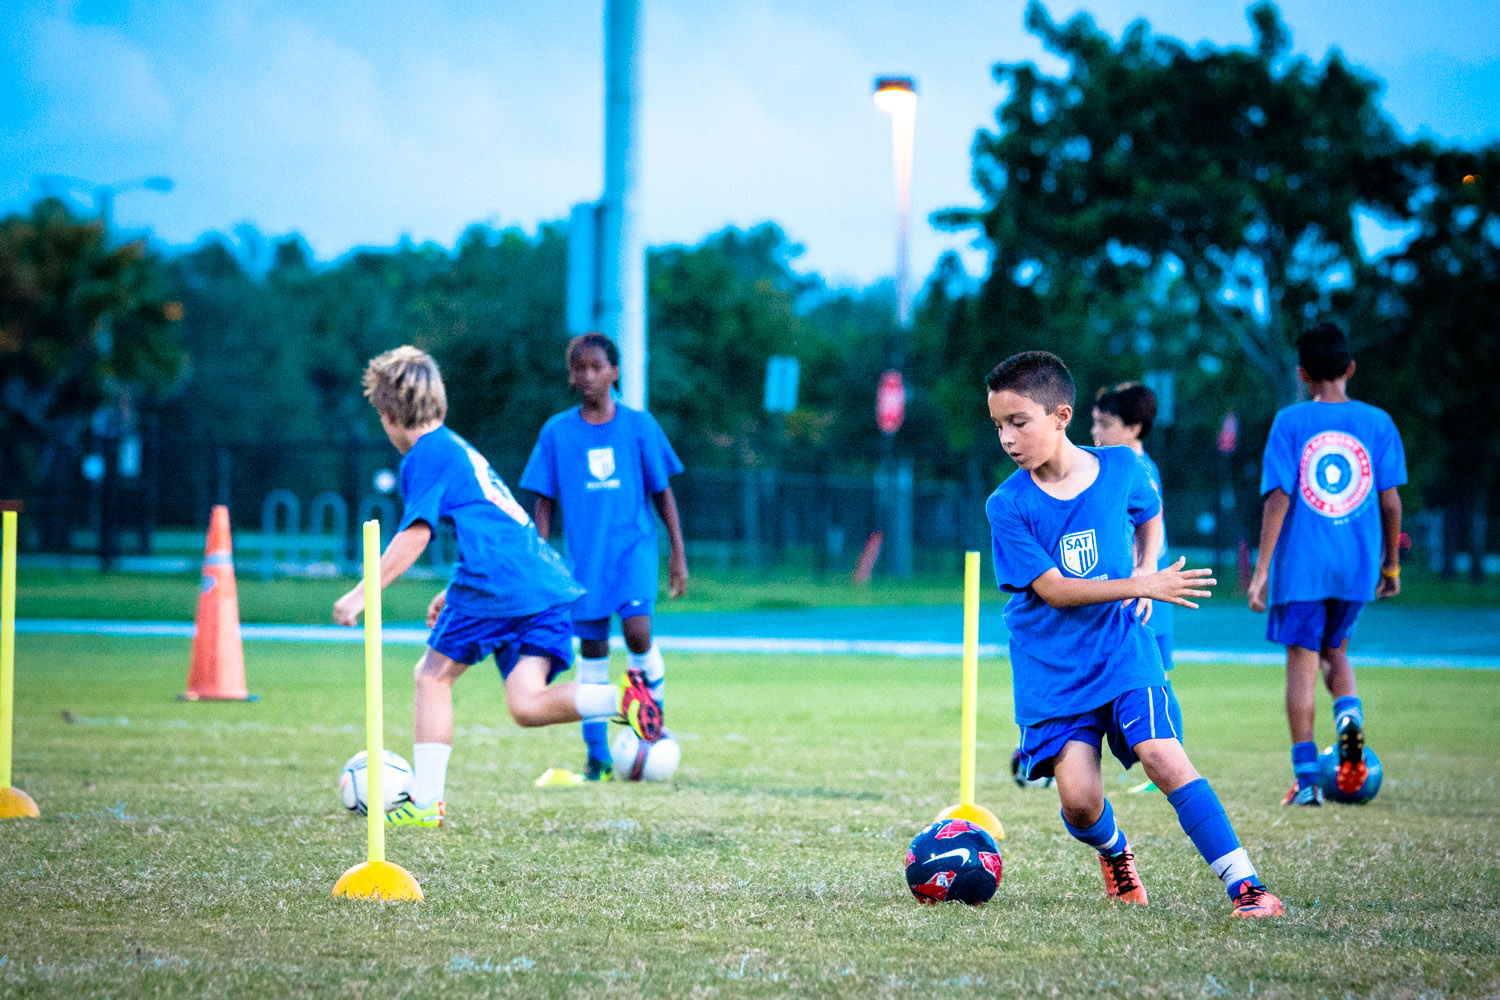 image of Holiday hockey clinics and soccer clinics for kids in cape town